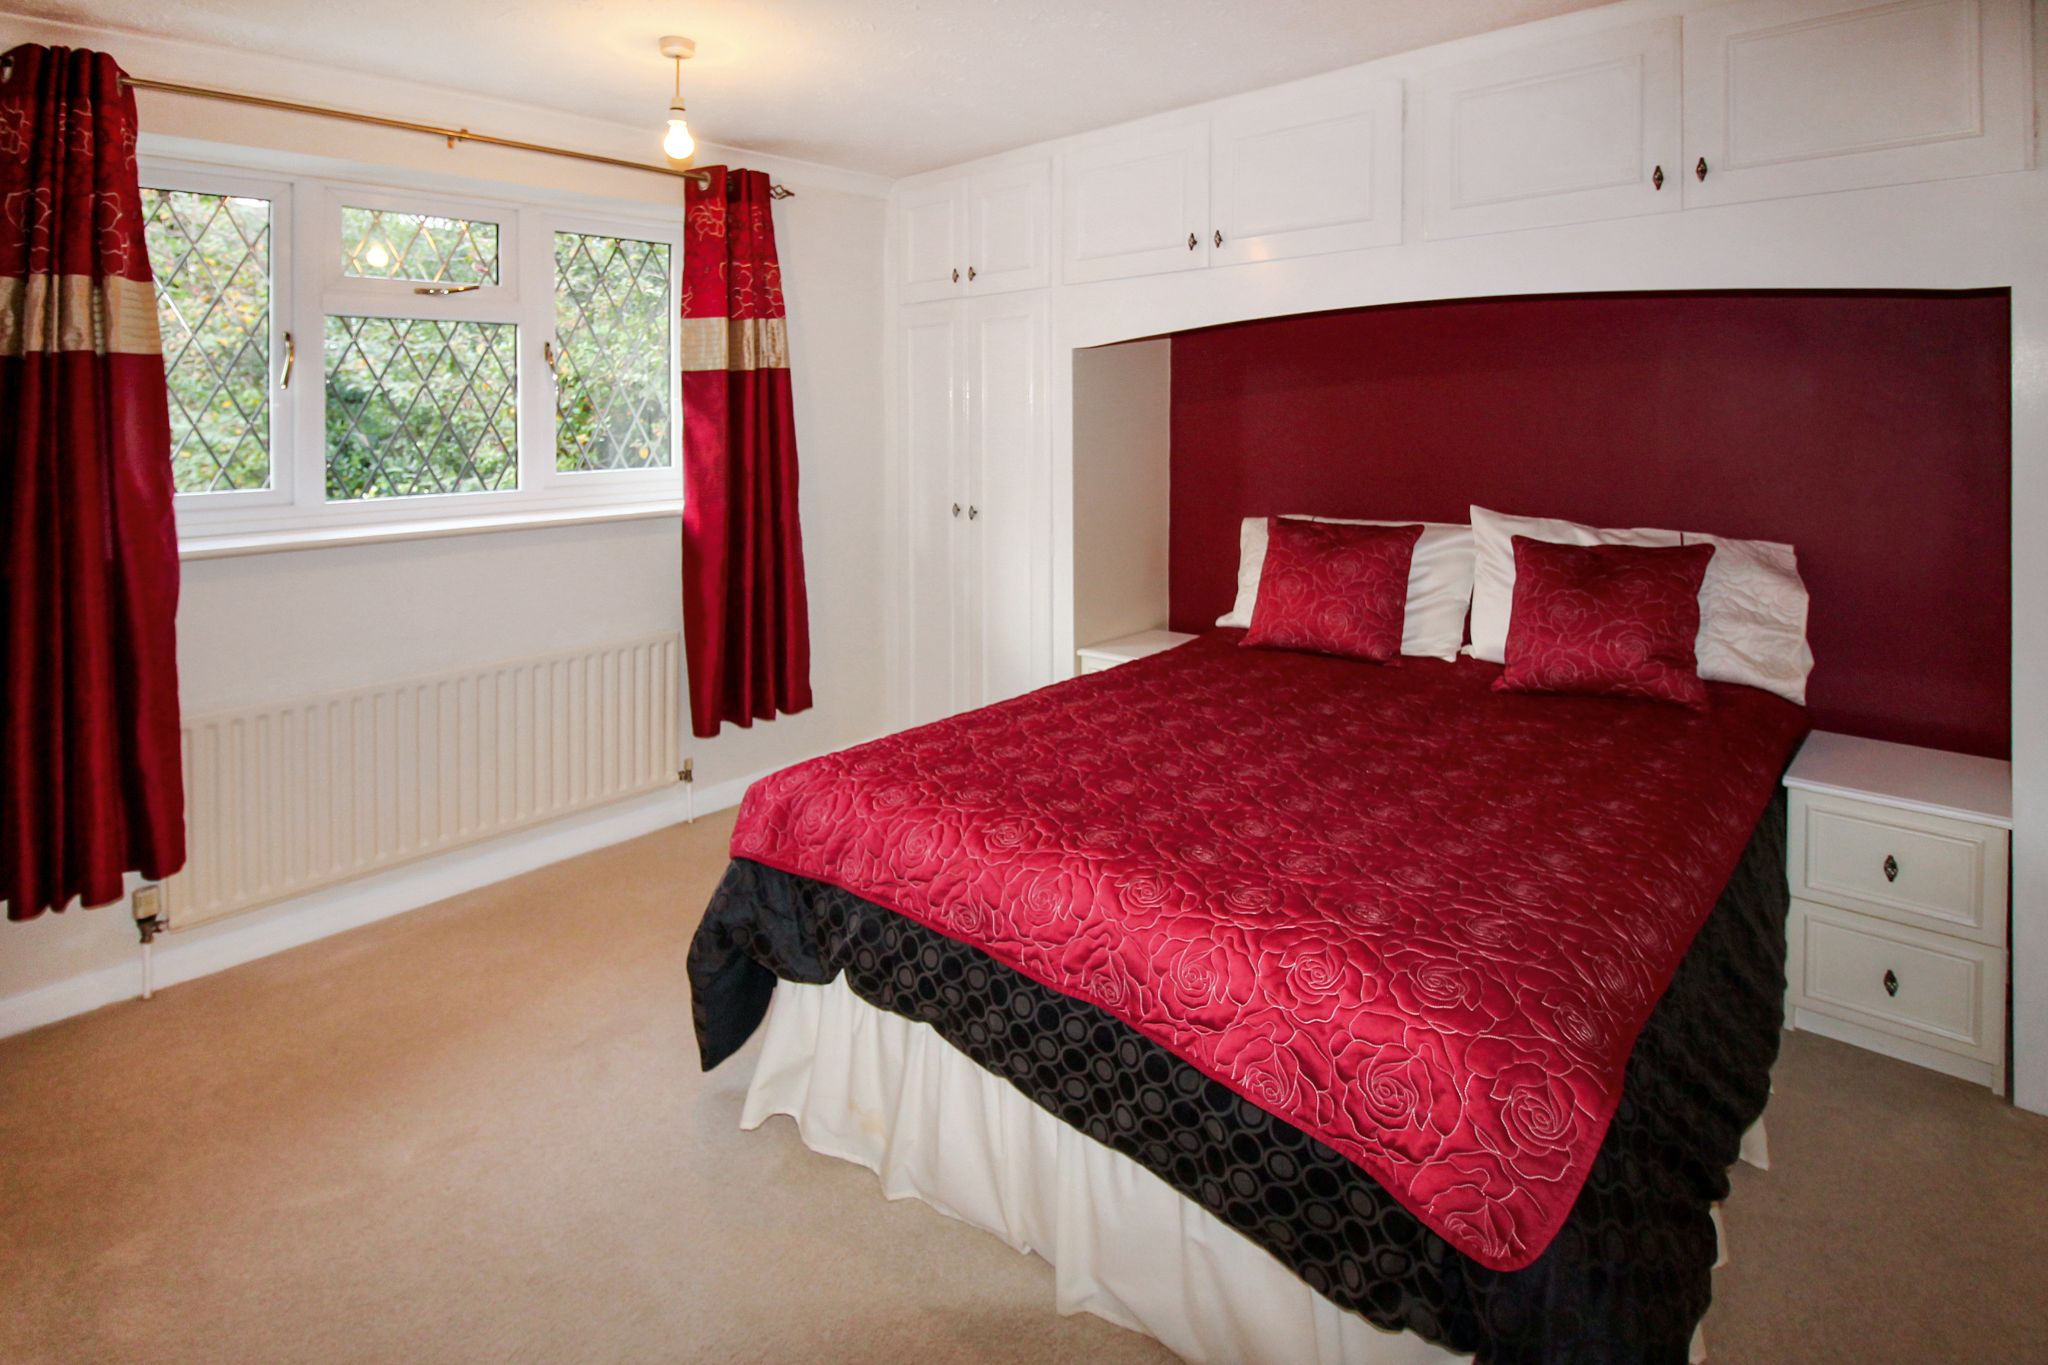 4 bedroom detached house SSTC in Solihull - Photograph 10.